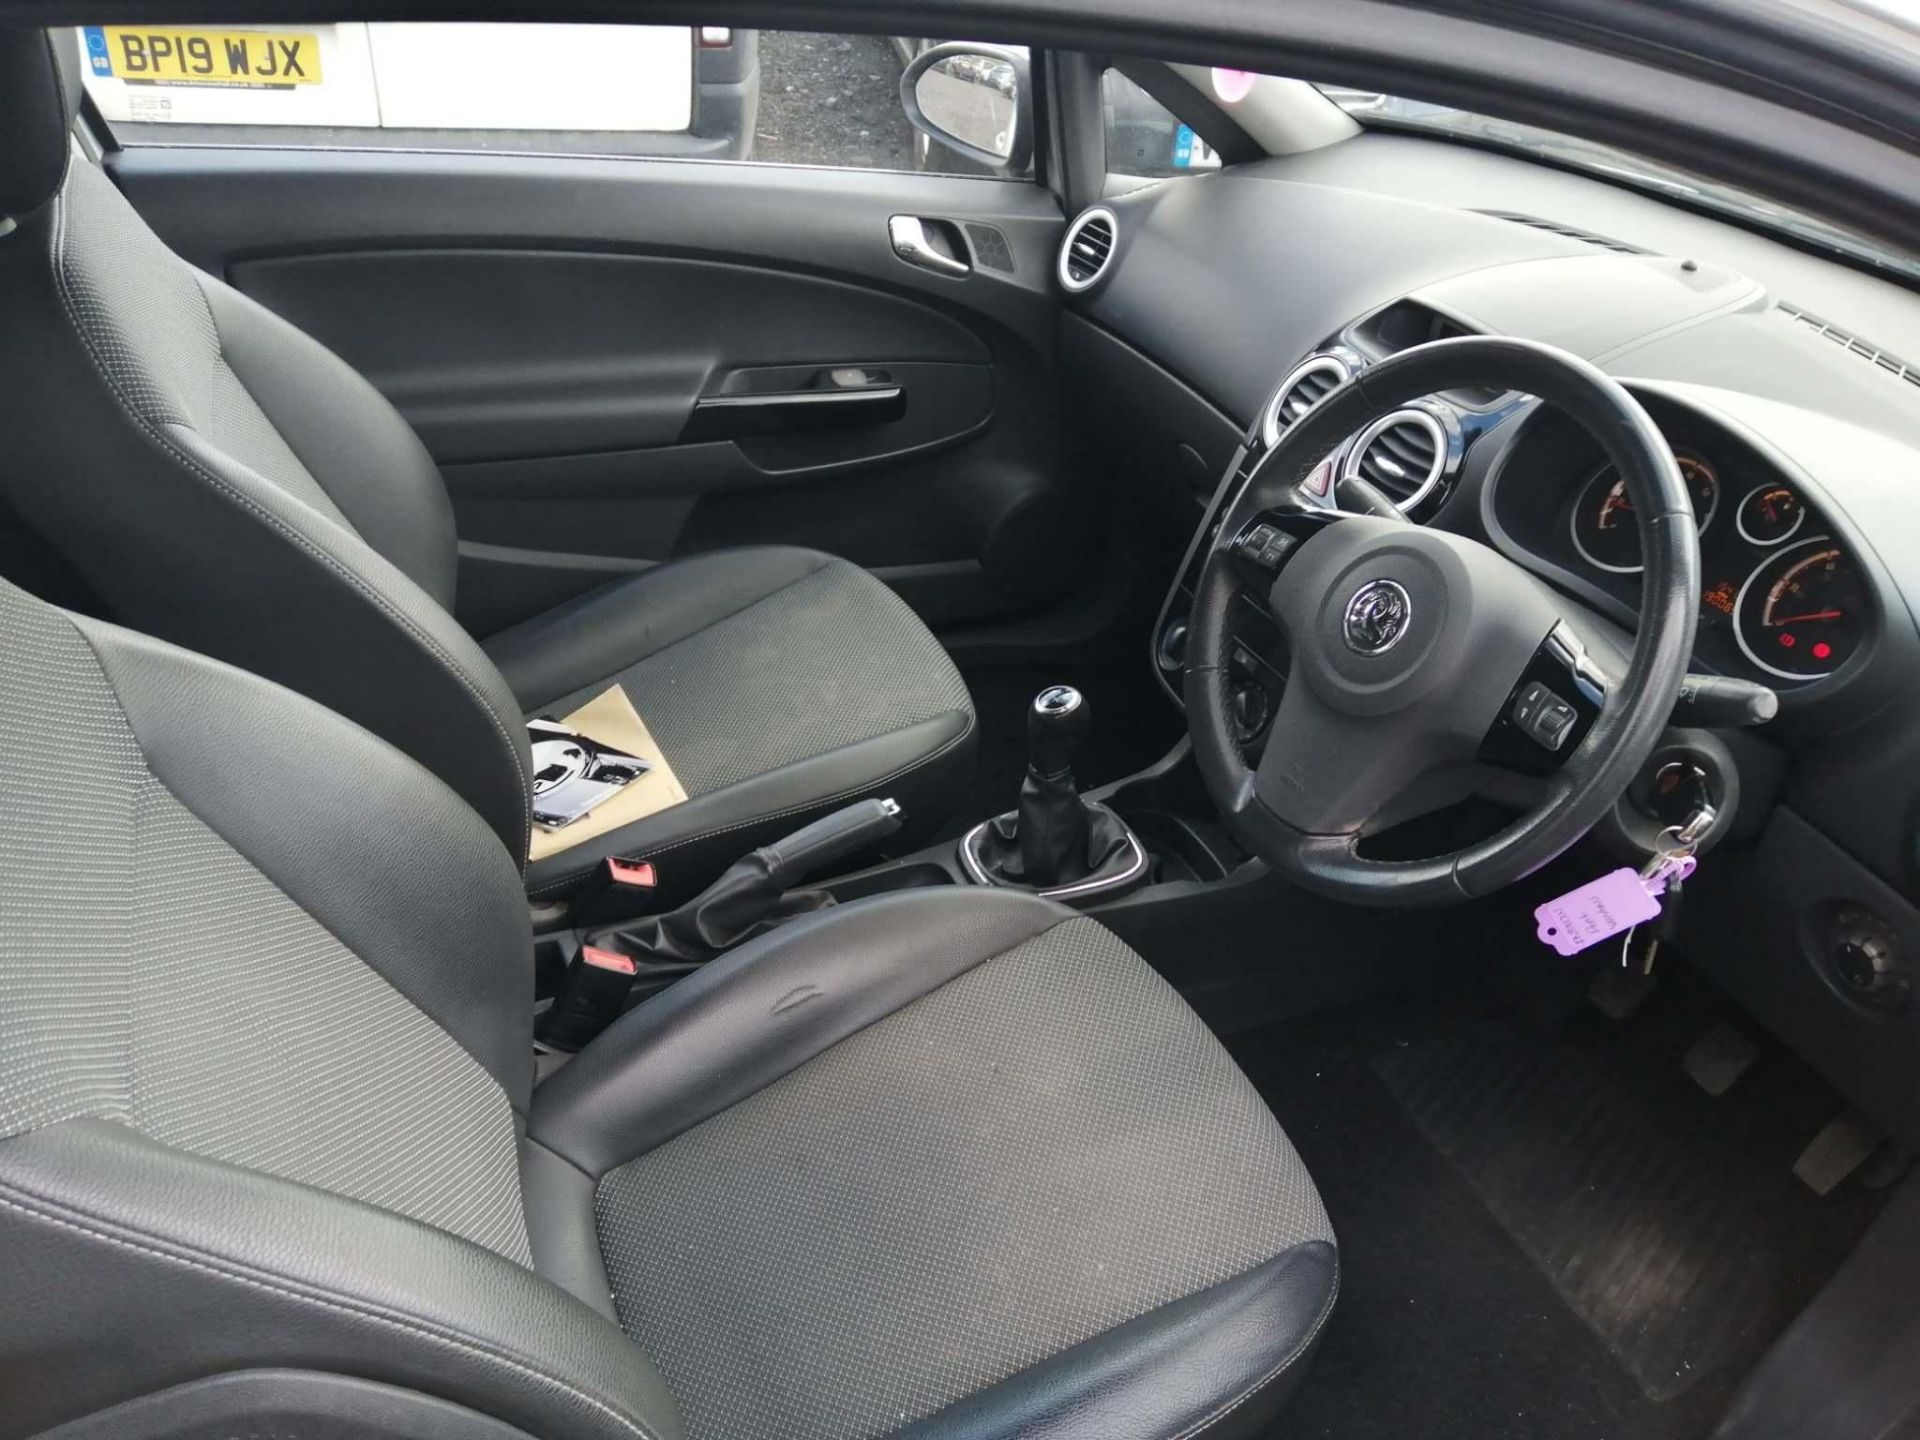 2010 Vauxhall Corsa 1.2 Design 3dr Hatchback - CL505 - NO VAT ON THE HAMMER - Location: Corby - Image 5 of 11